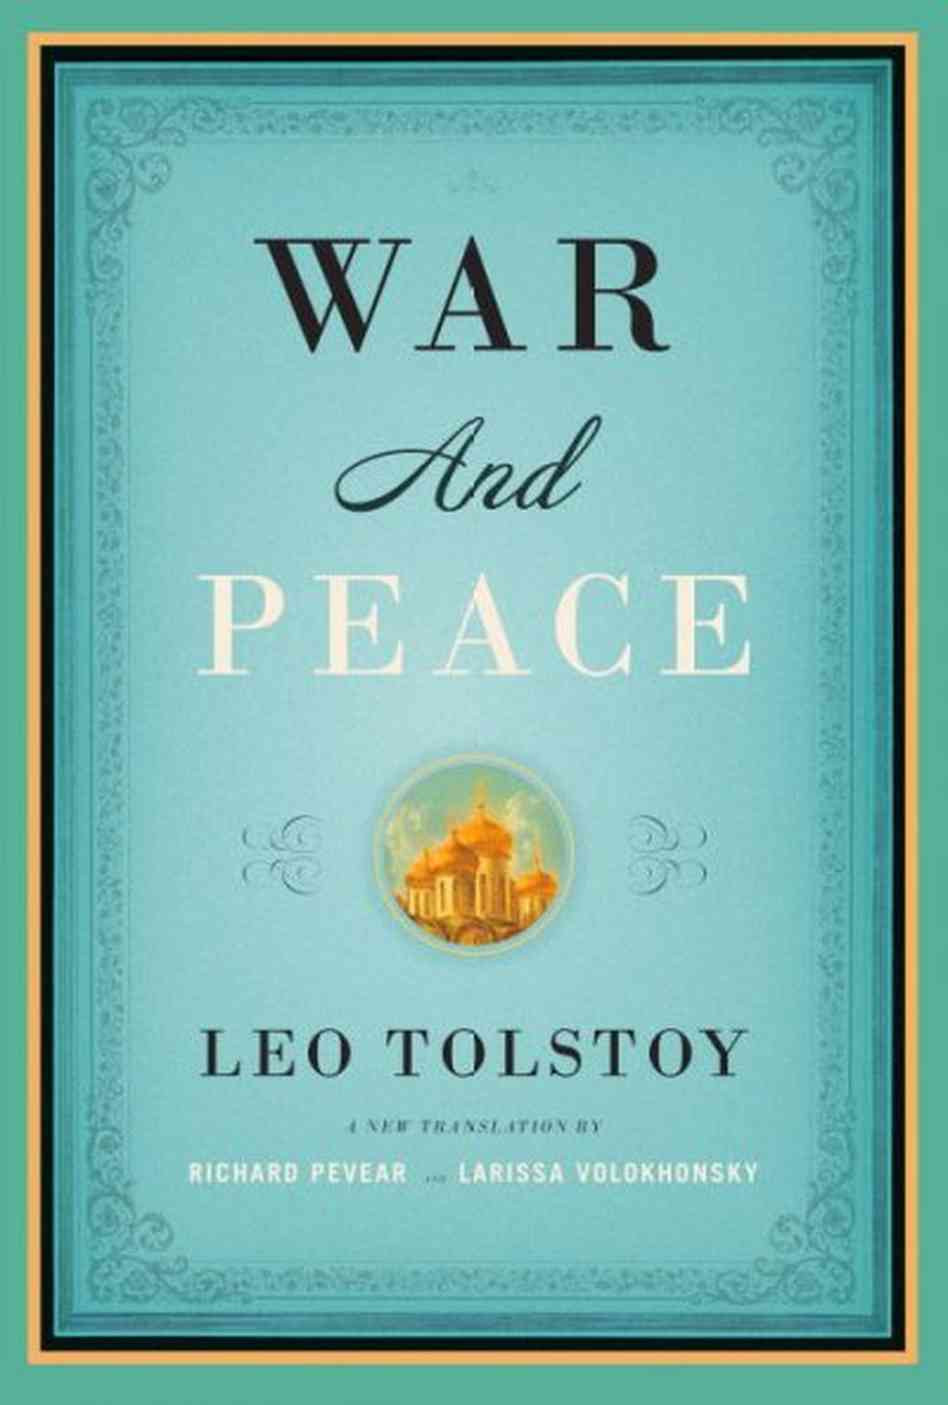 War and Peace by Leo Tolstoy.jpg